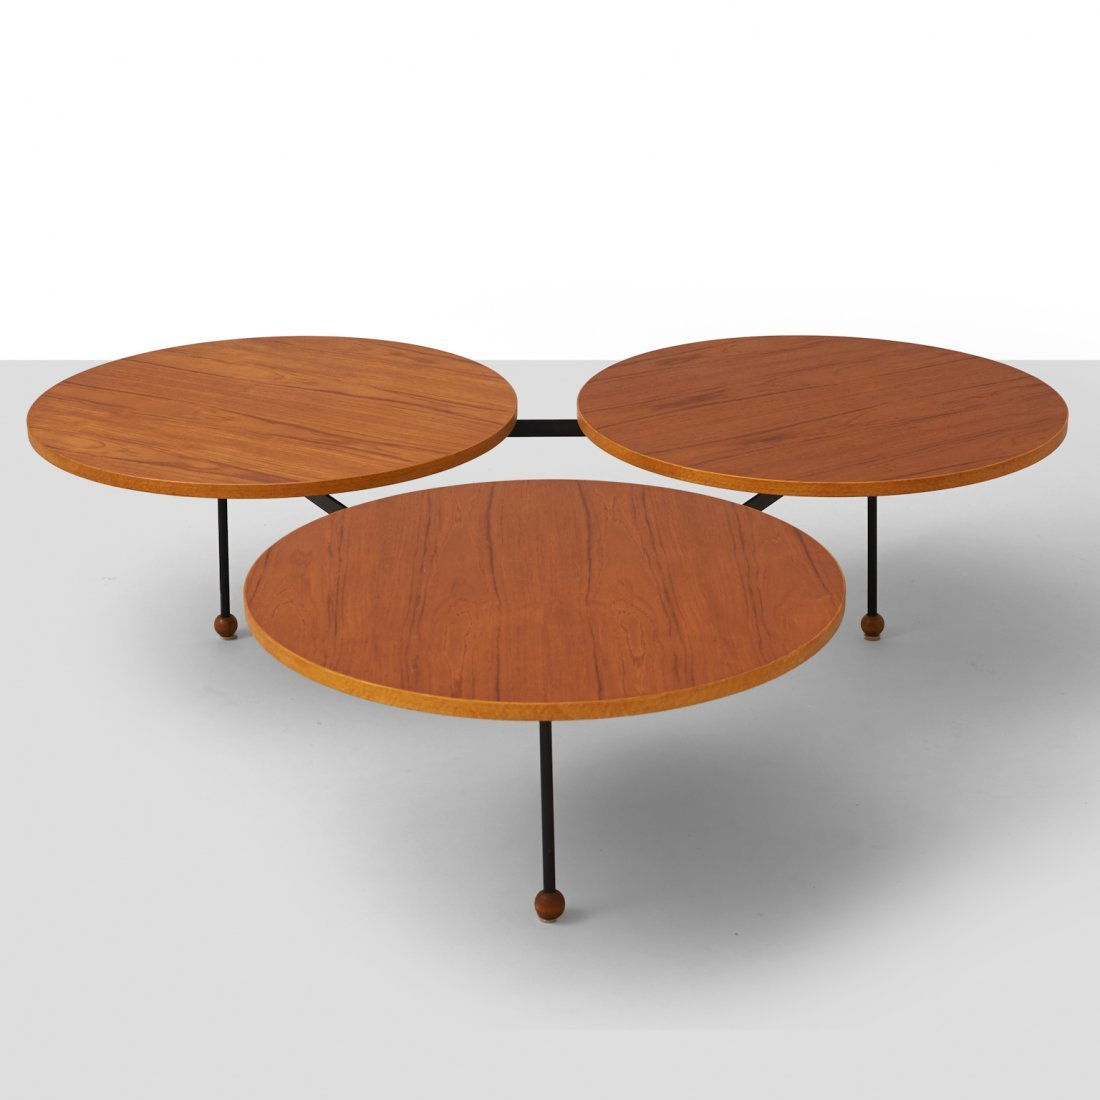 Grossman Flying Saucer Coffee Table